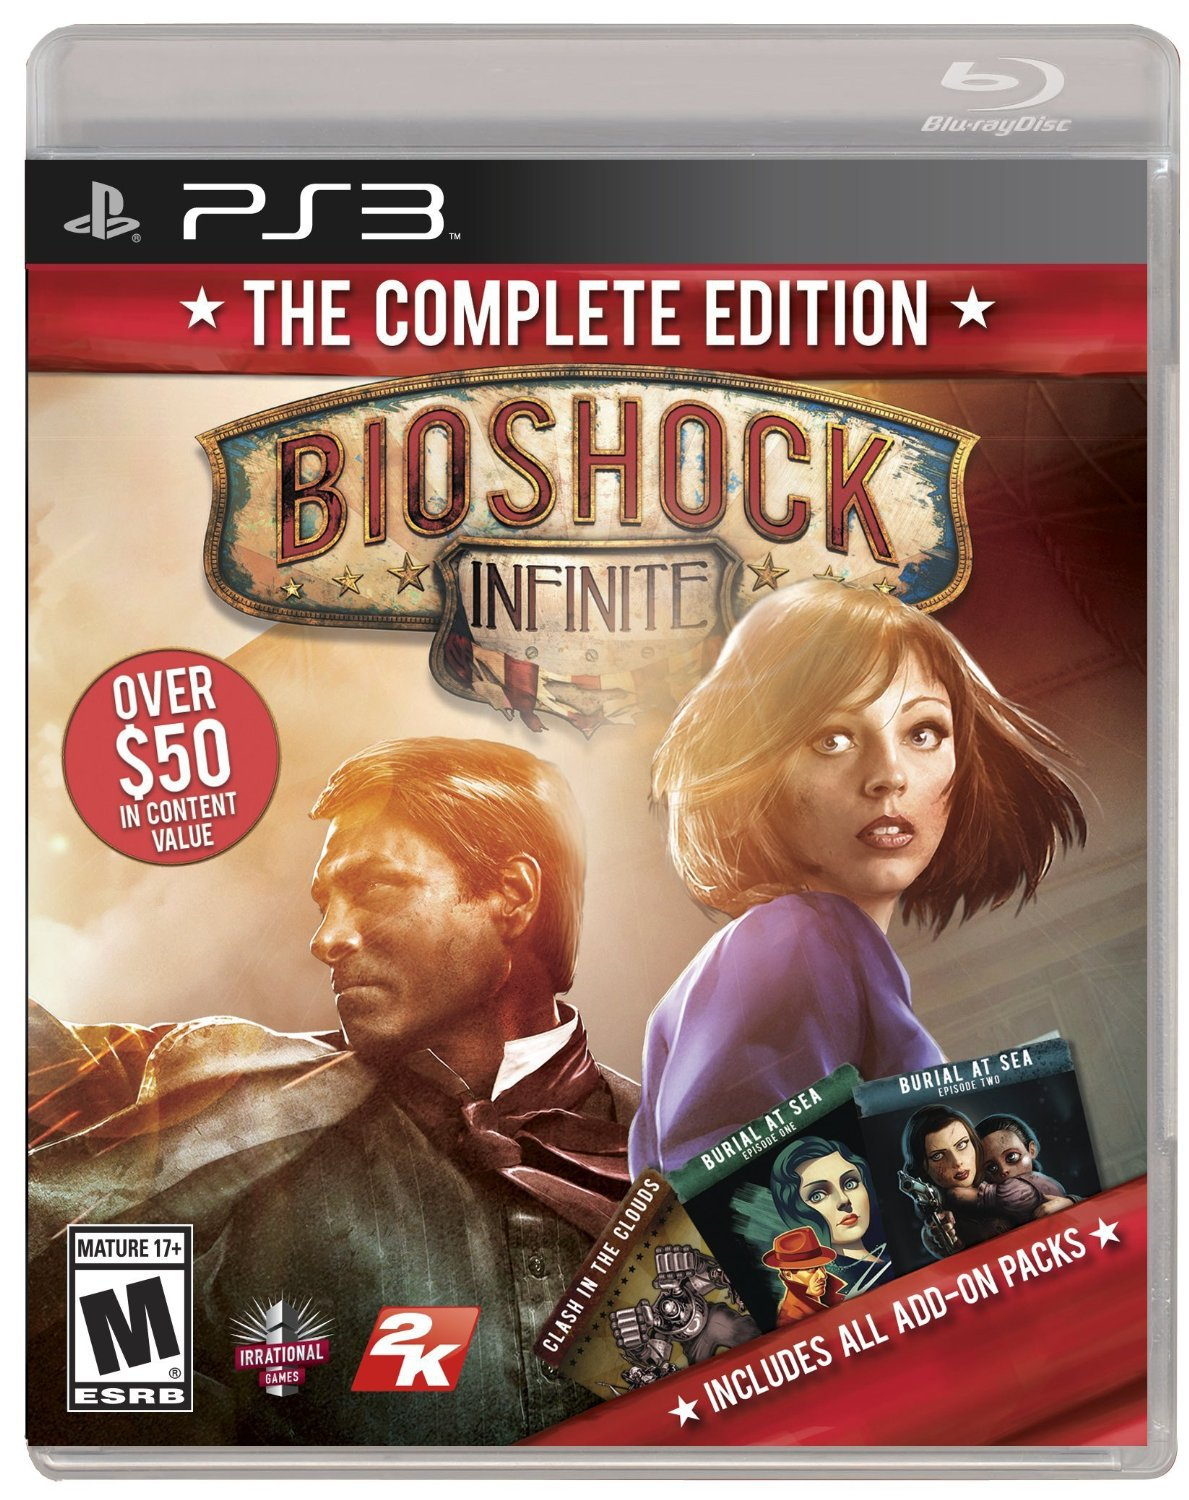 Bioshock Infinite: The Complete Edition PS3 Physical Game Disc US